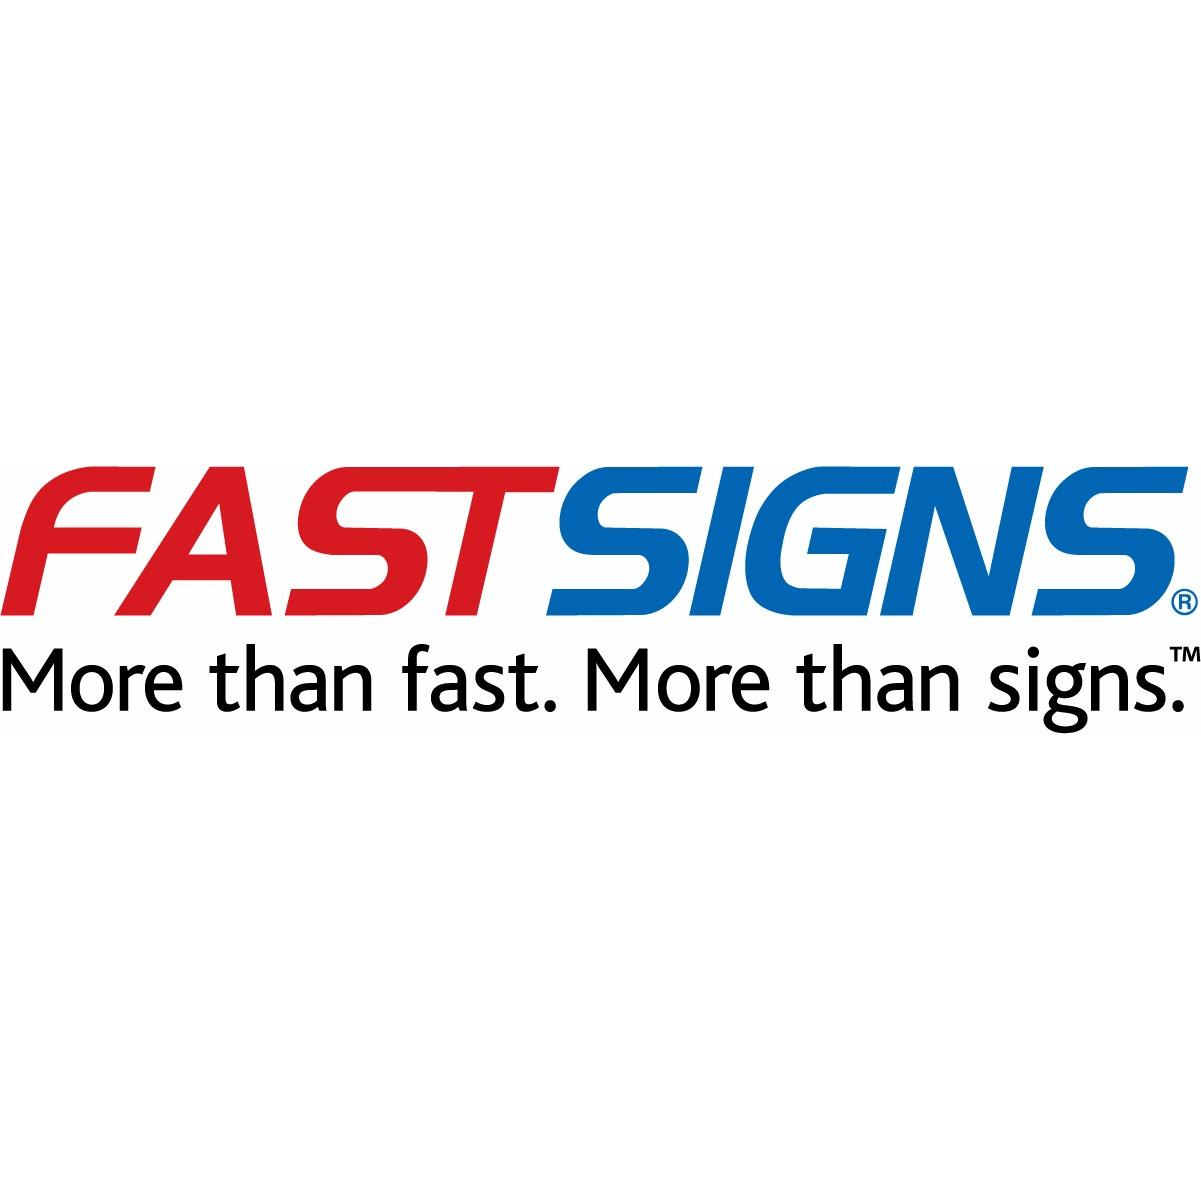 image of FASTSIGNS